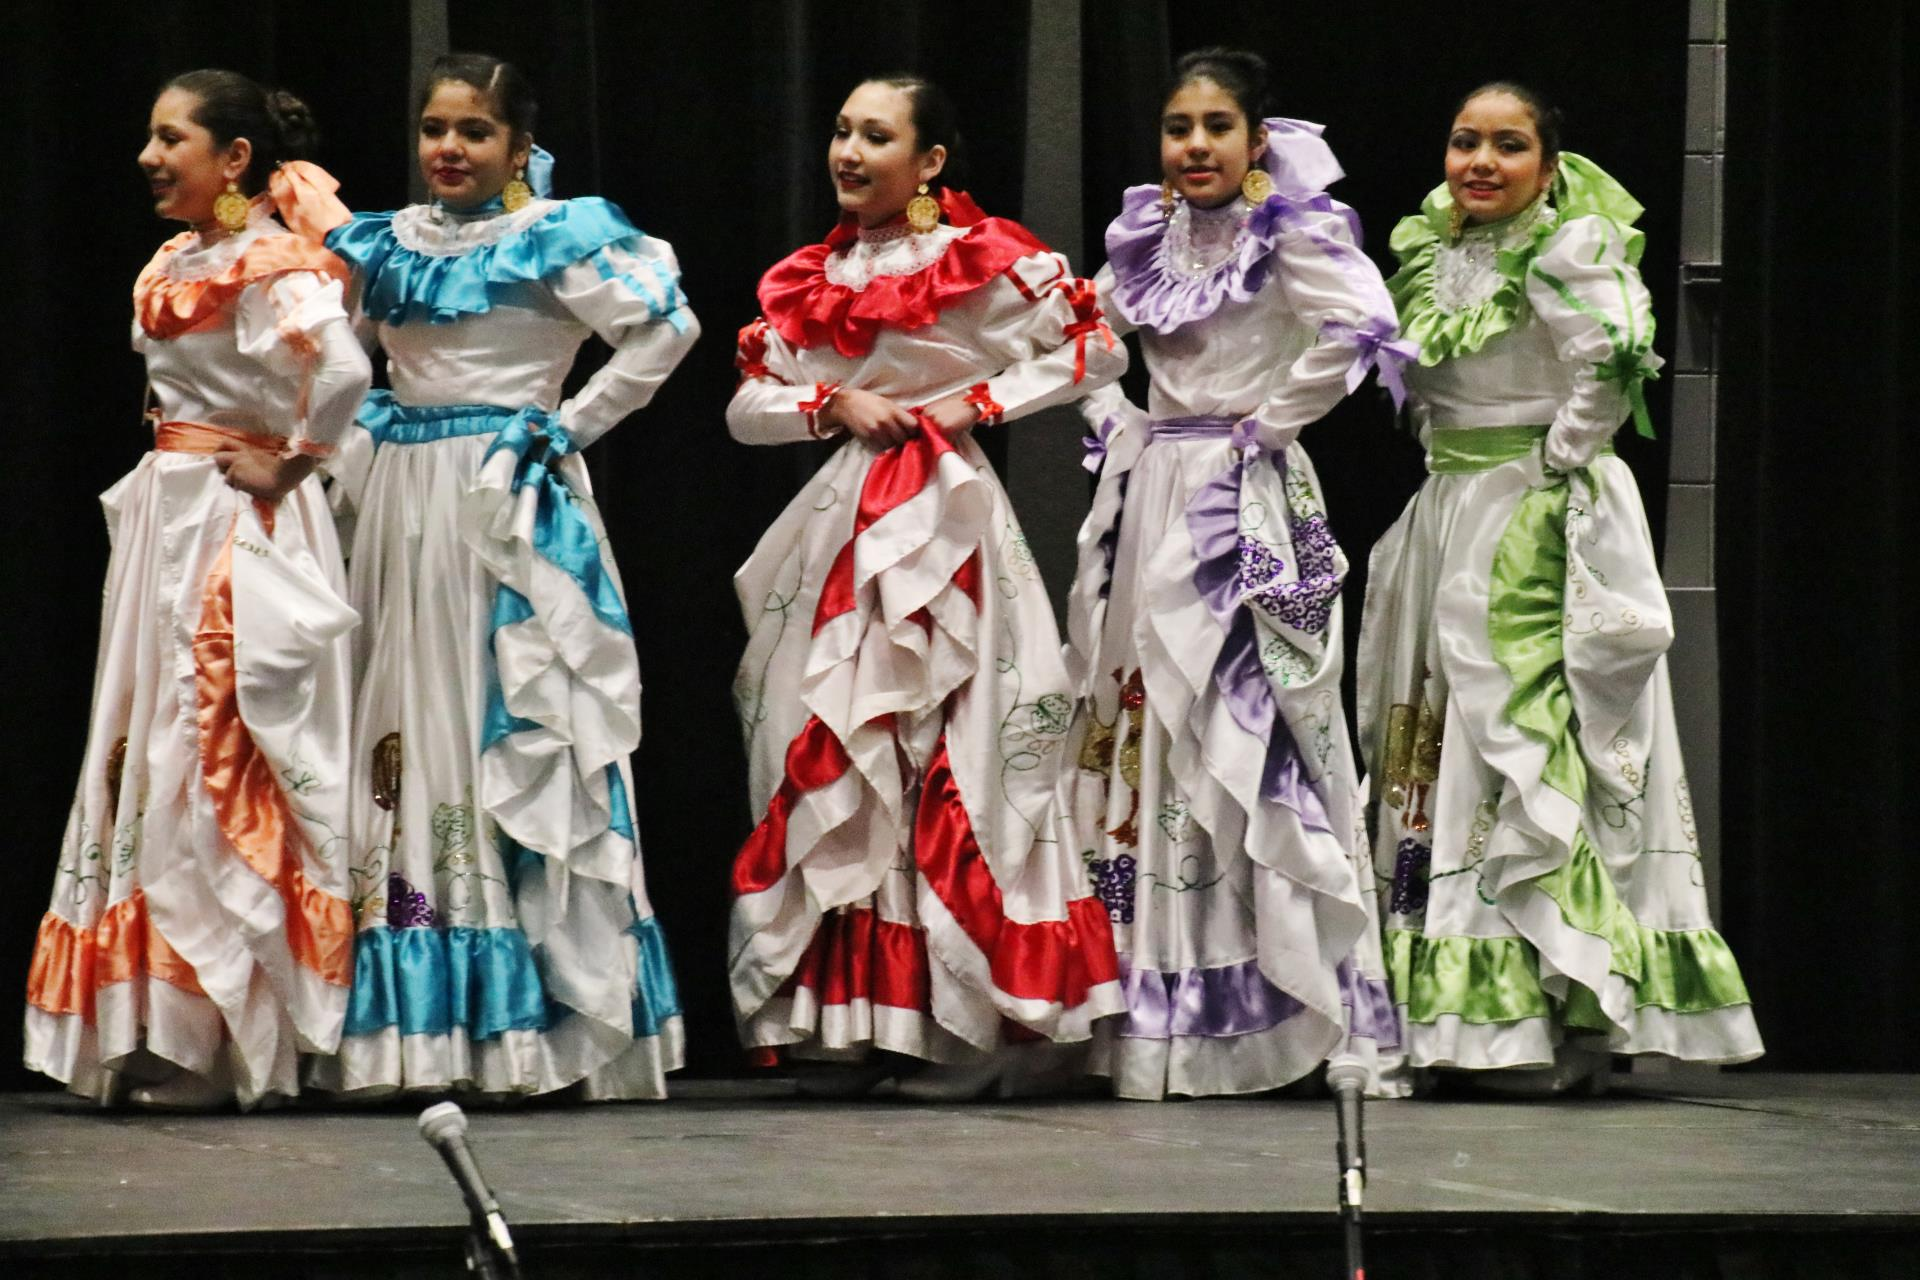 Siouxland Multicultural Fair 2018